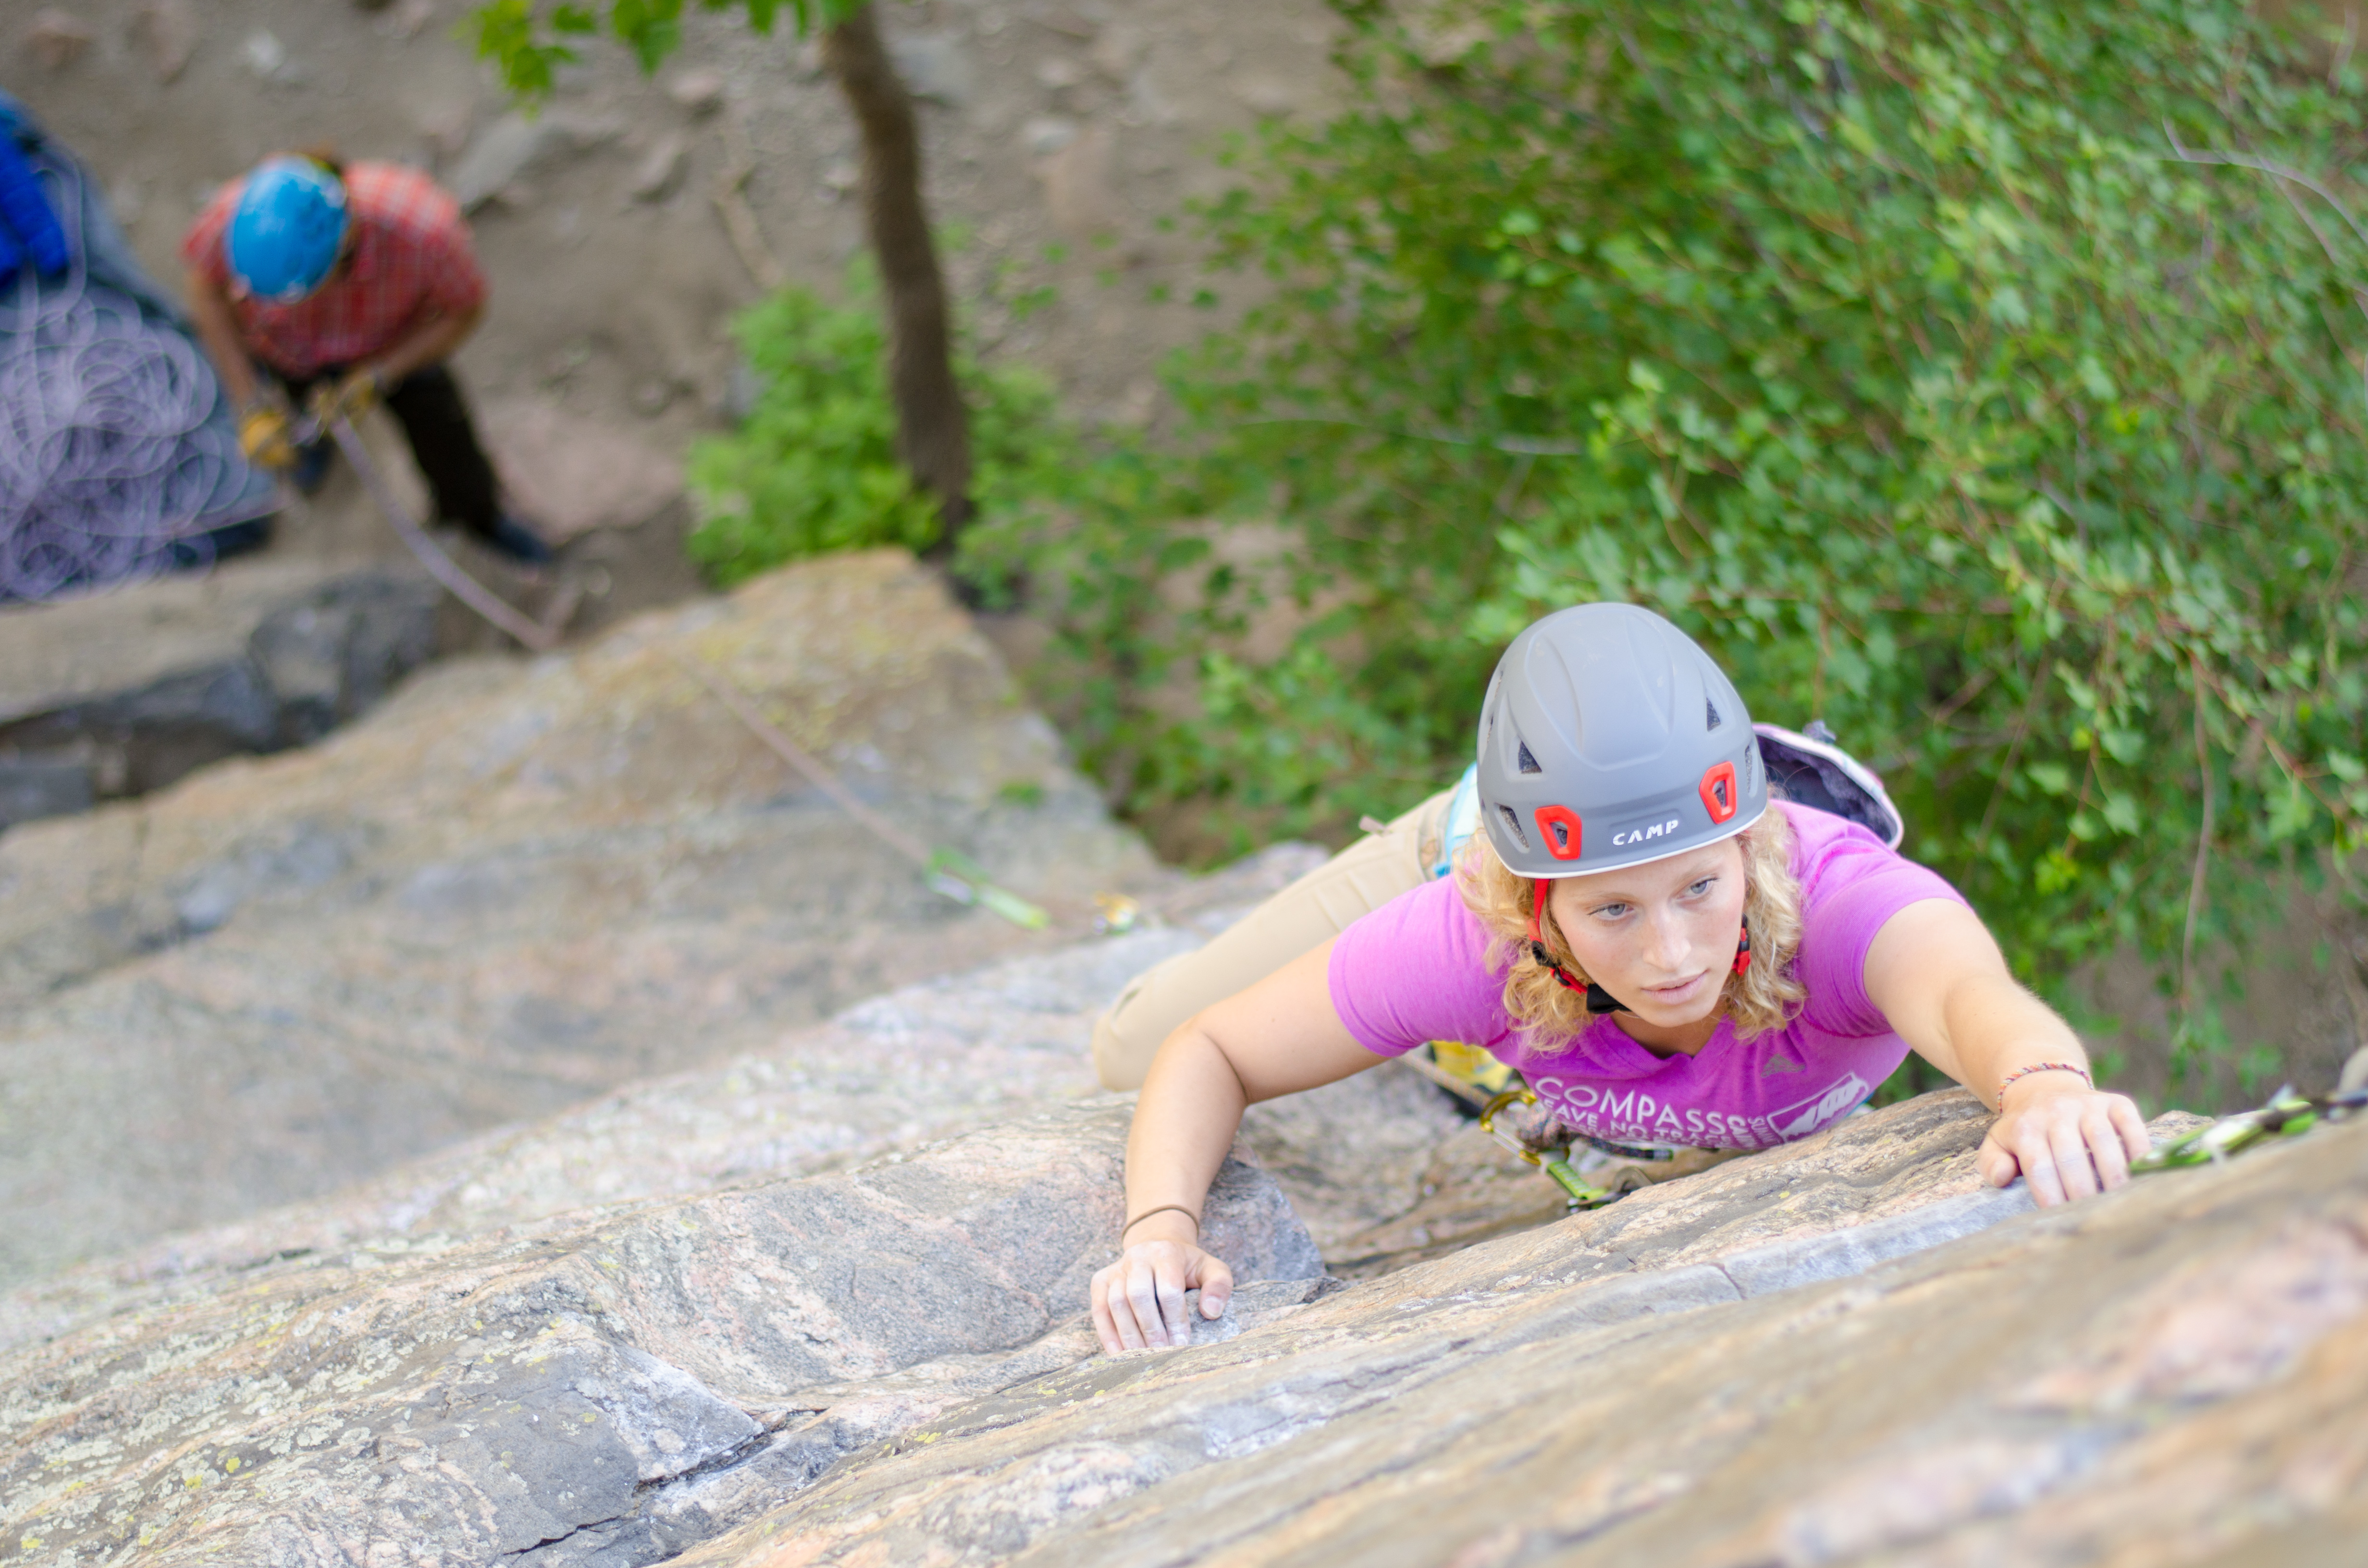 Girl Climbing with Camp Helmet